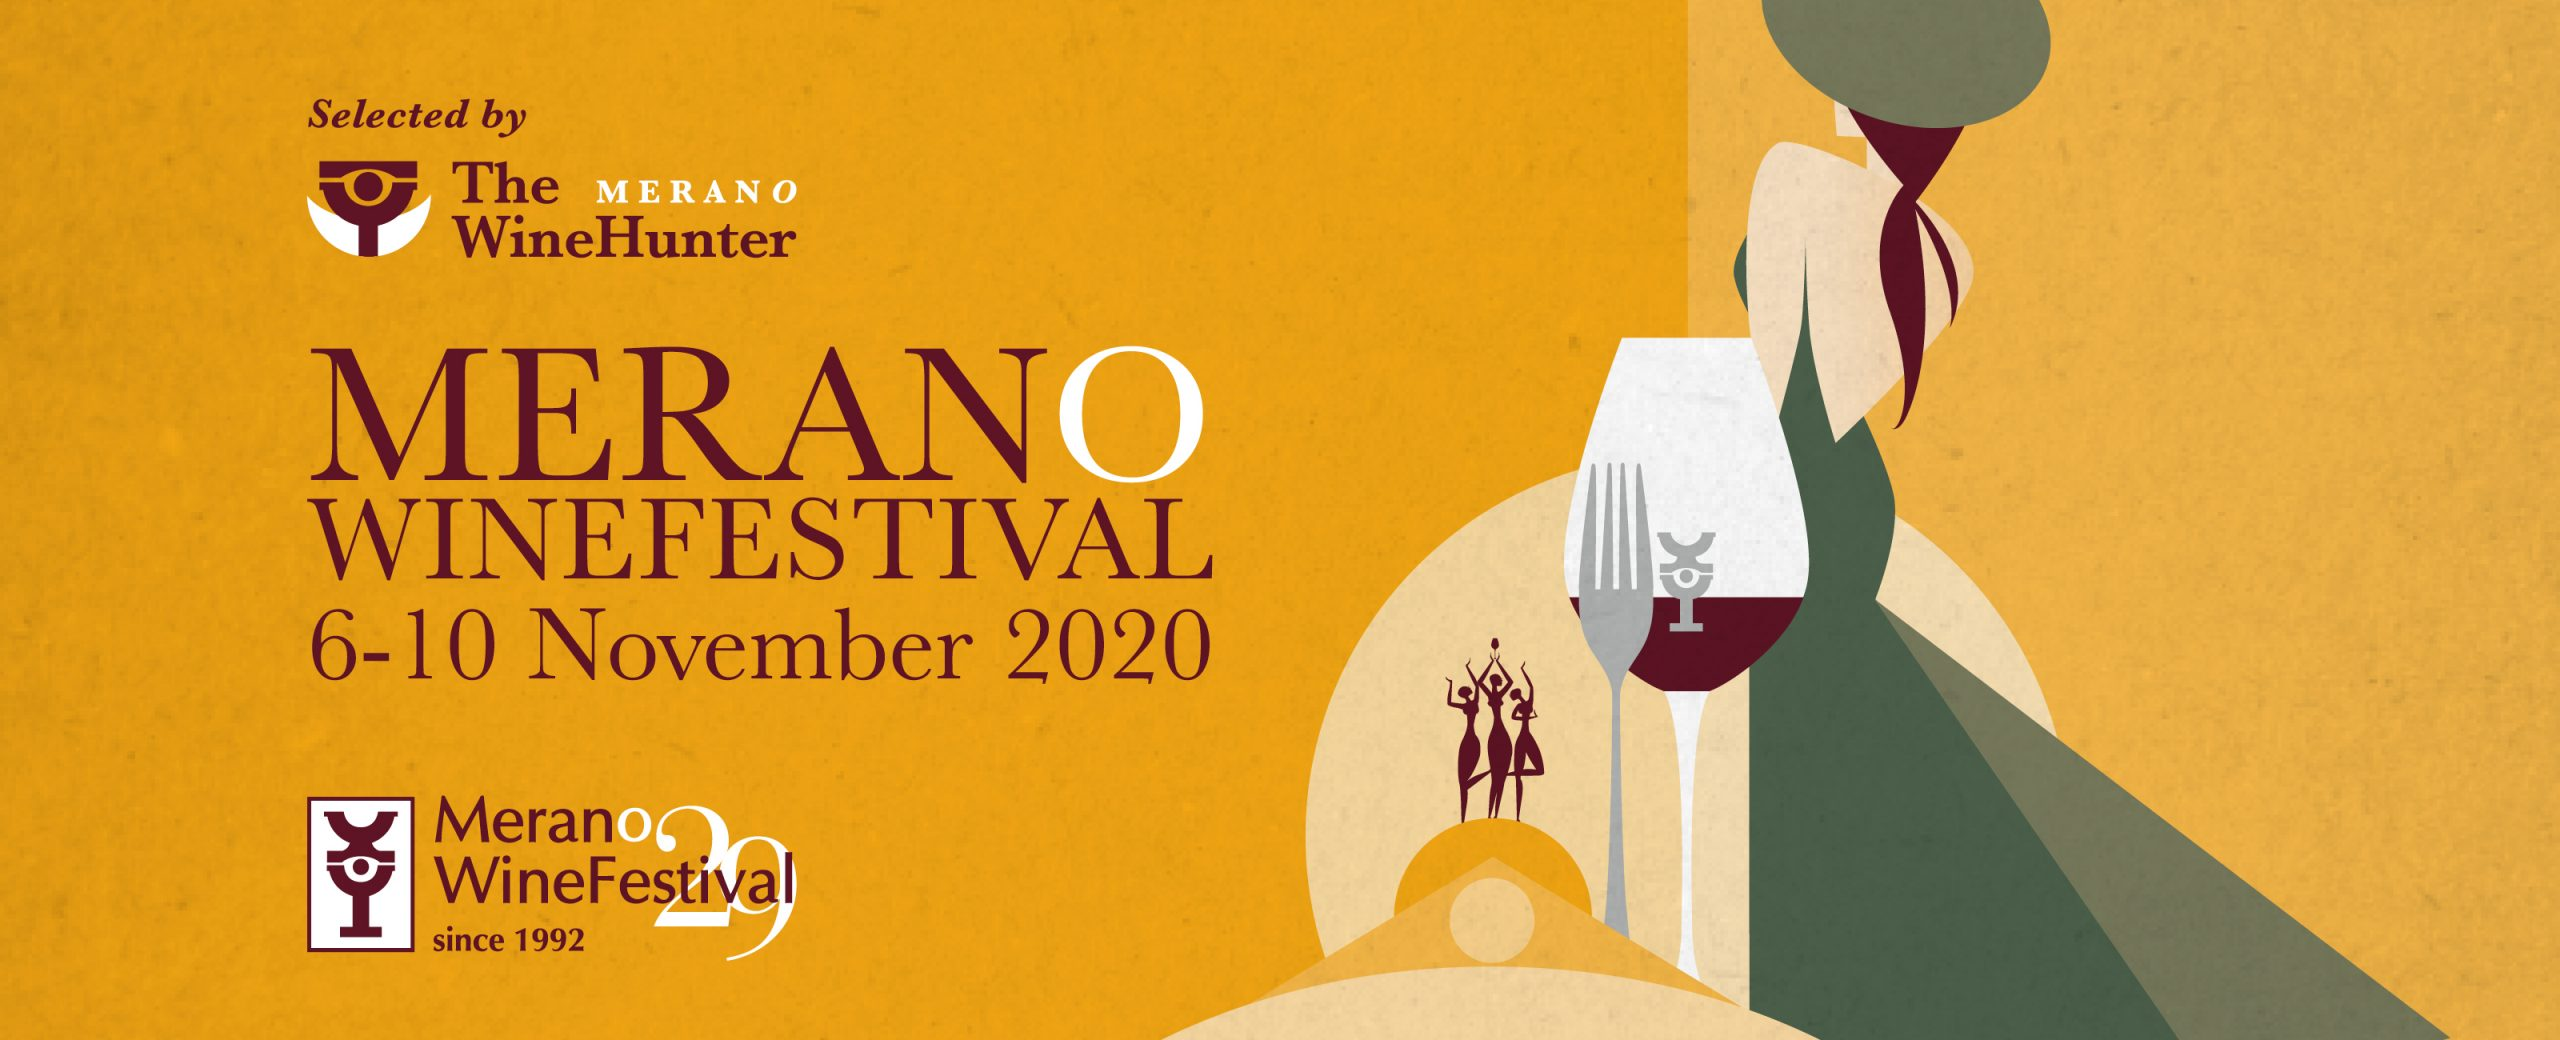 about the merano winefestival